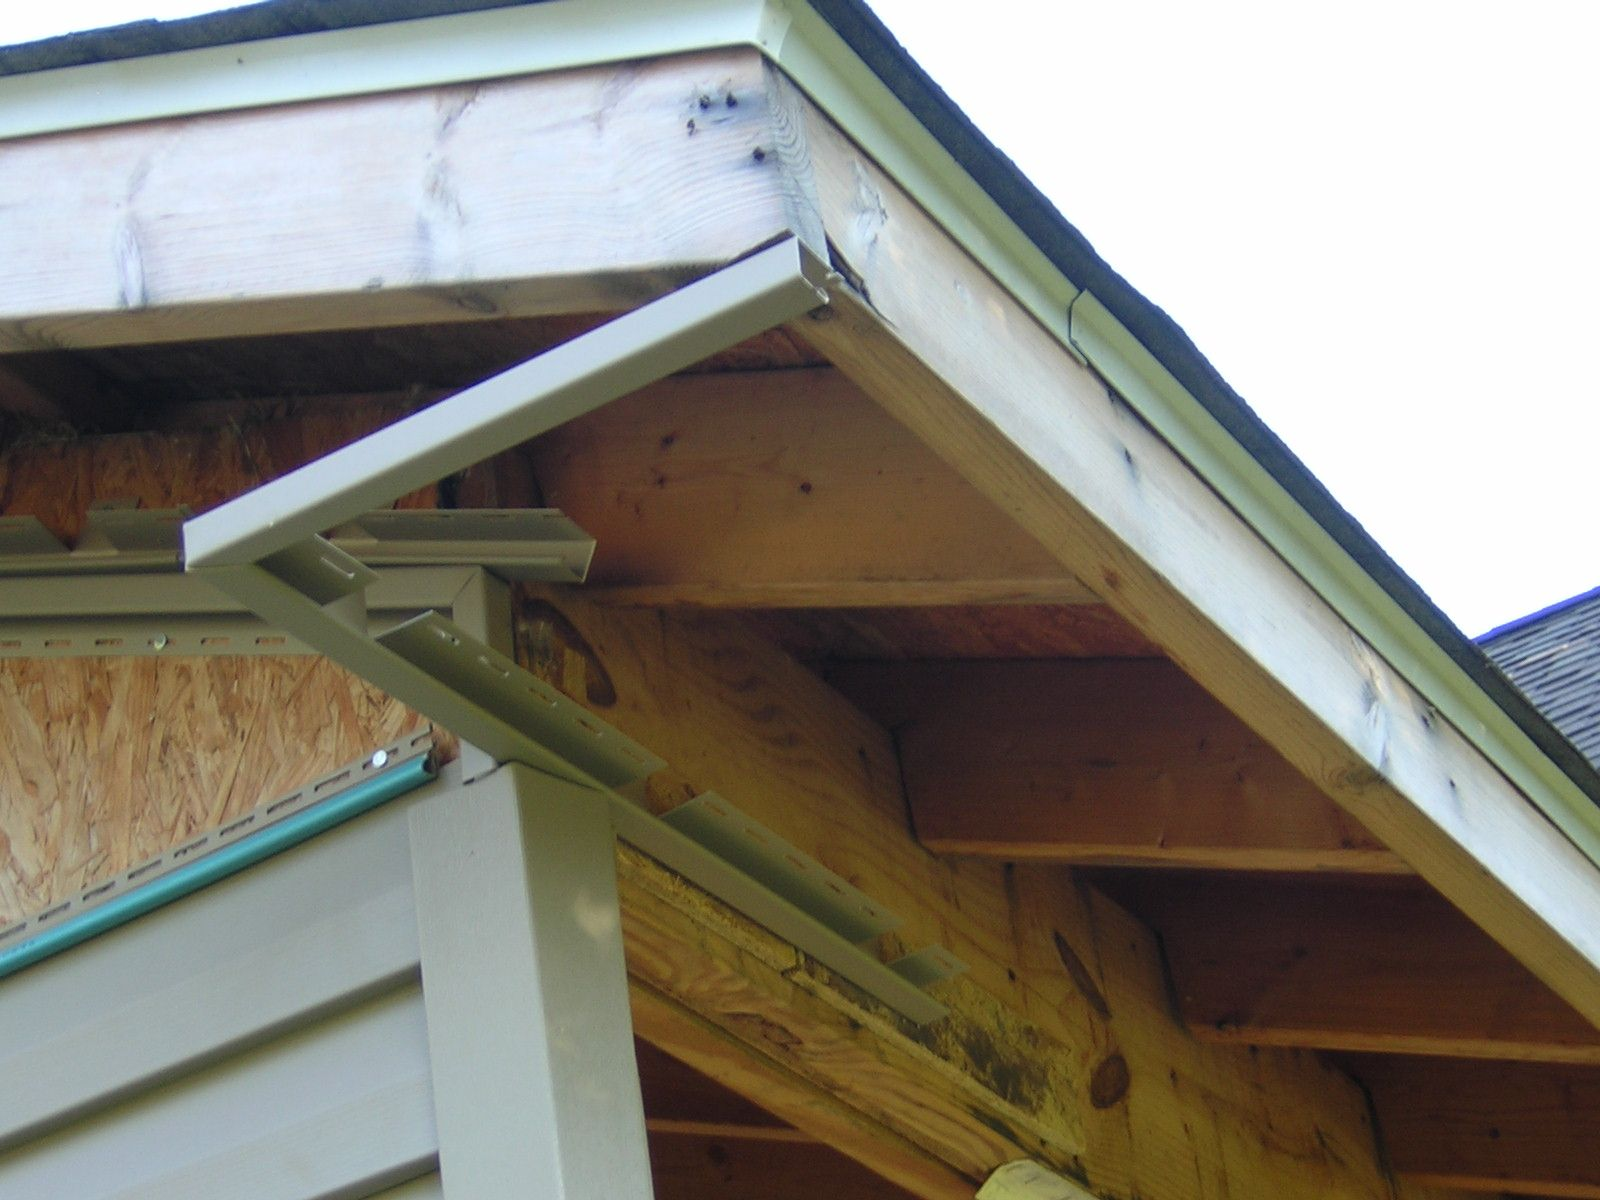 J channel for a soffit box | Help for home owners ...